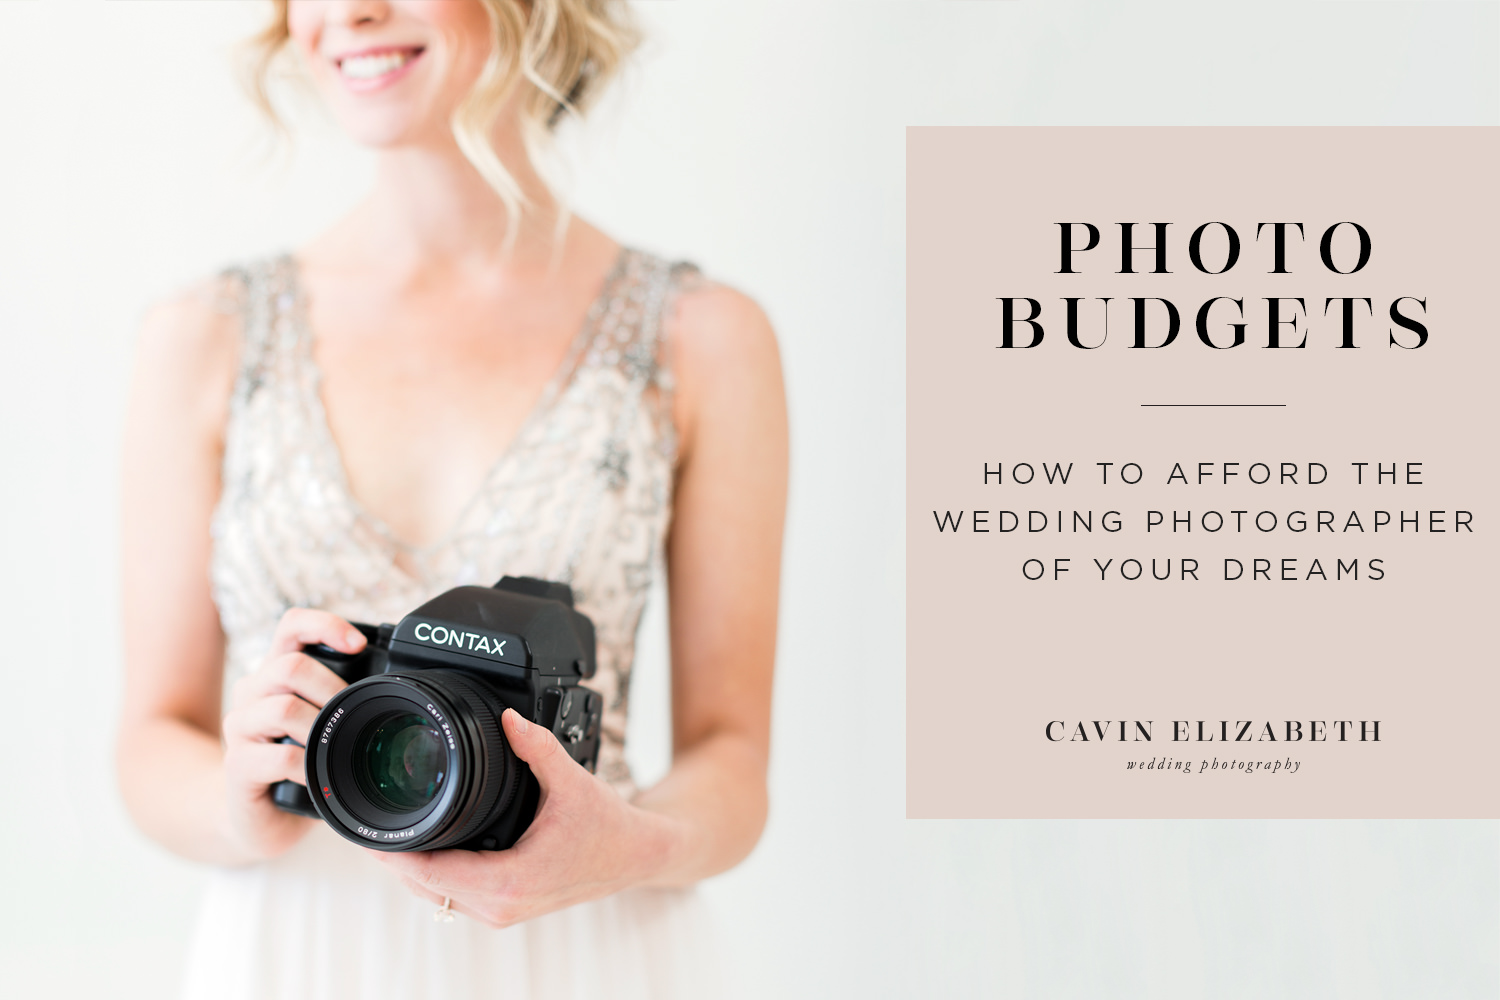 How to Afford the Wedding Photographer of Your Dreams, Making more room in your wedding budget for photography